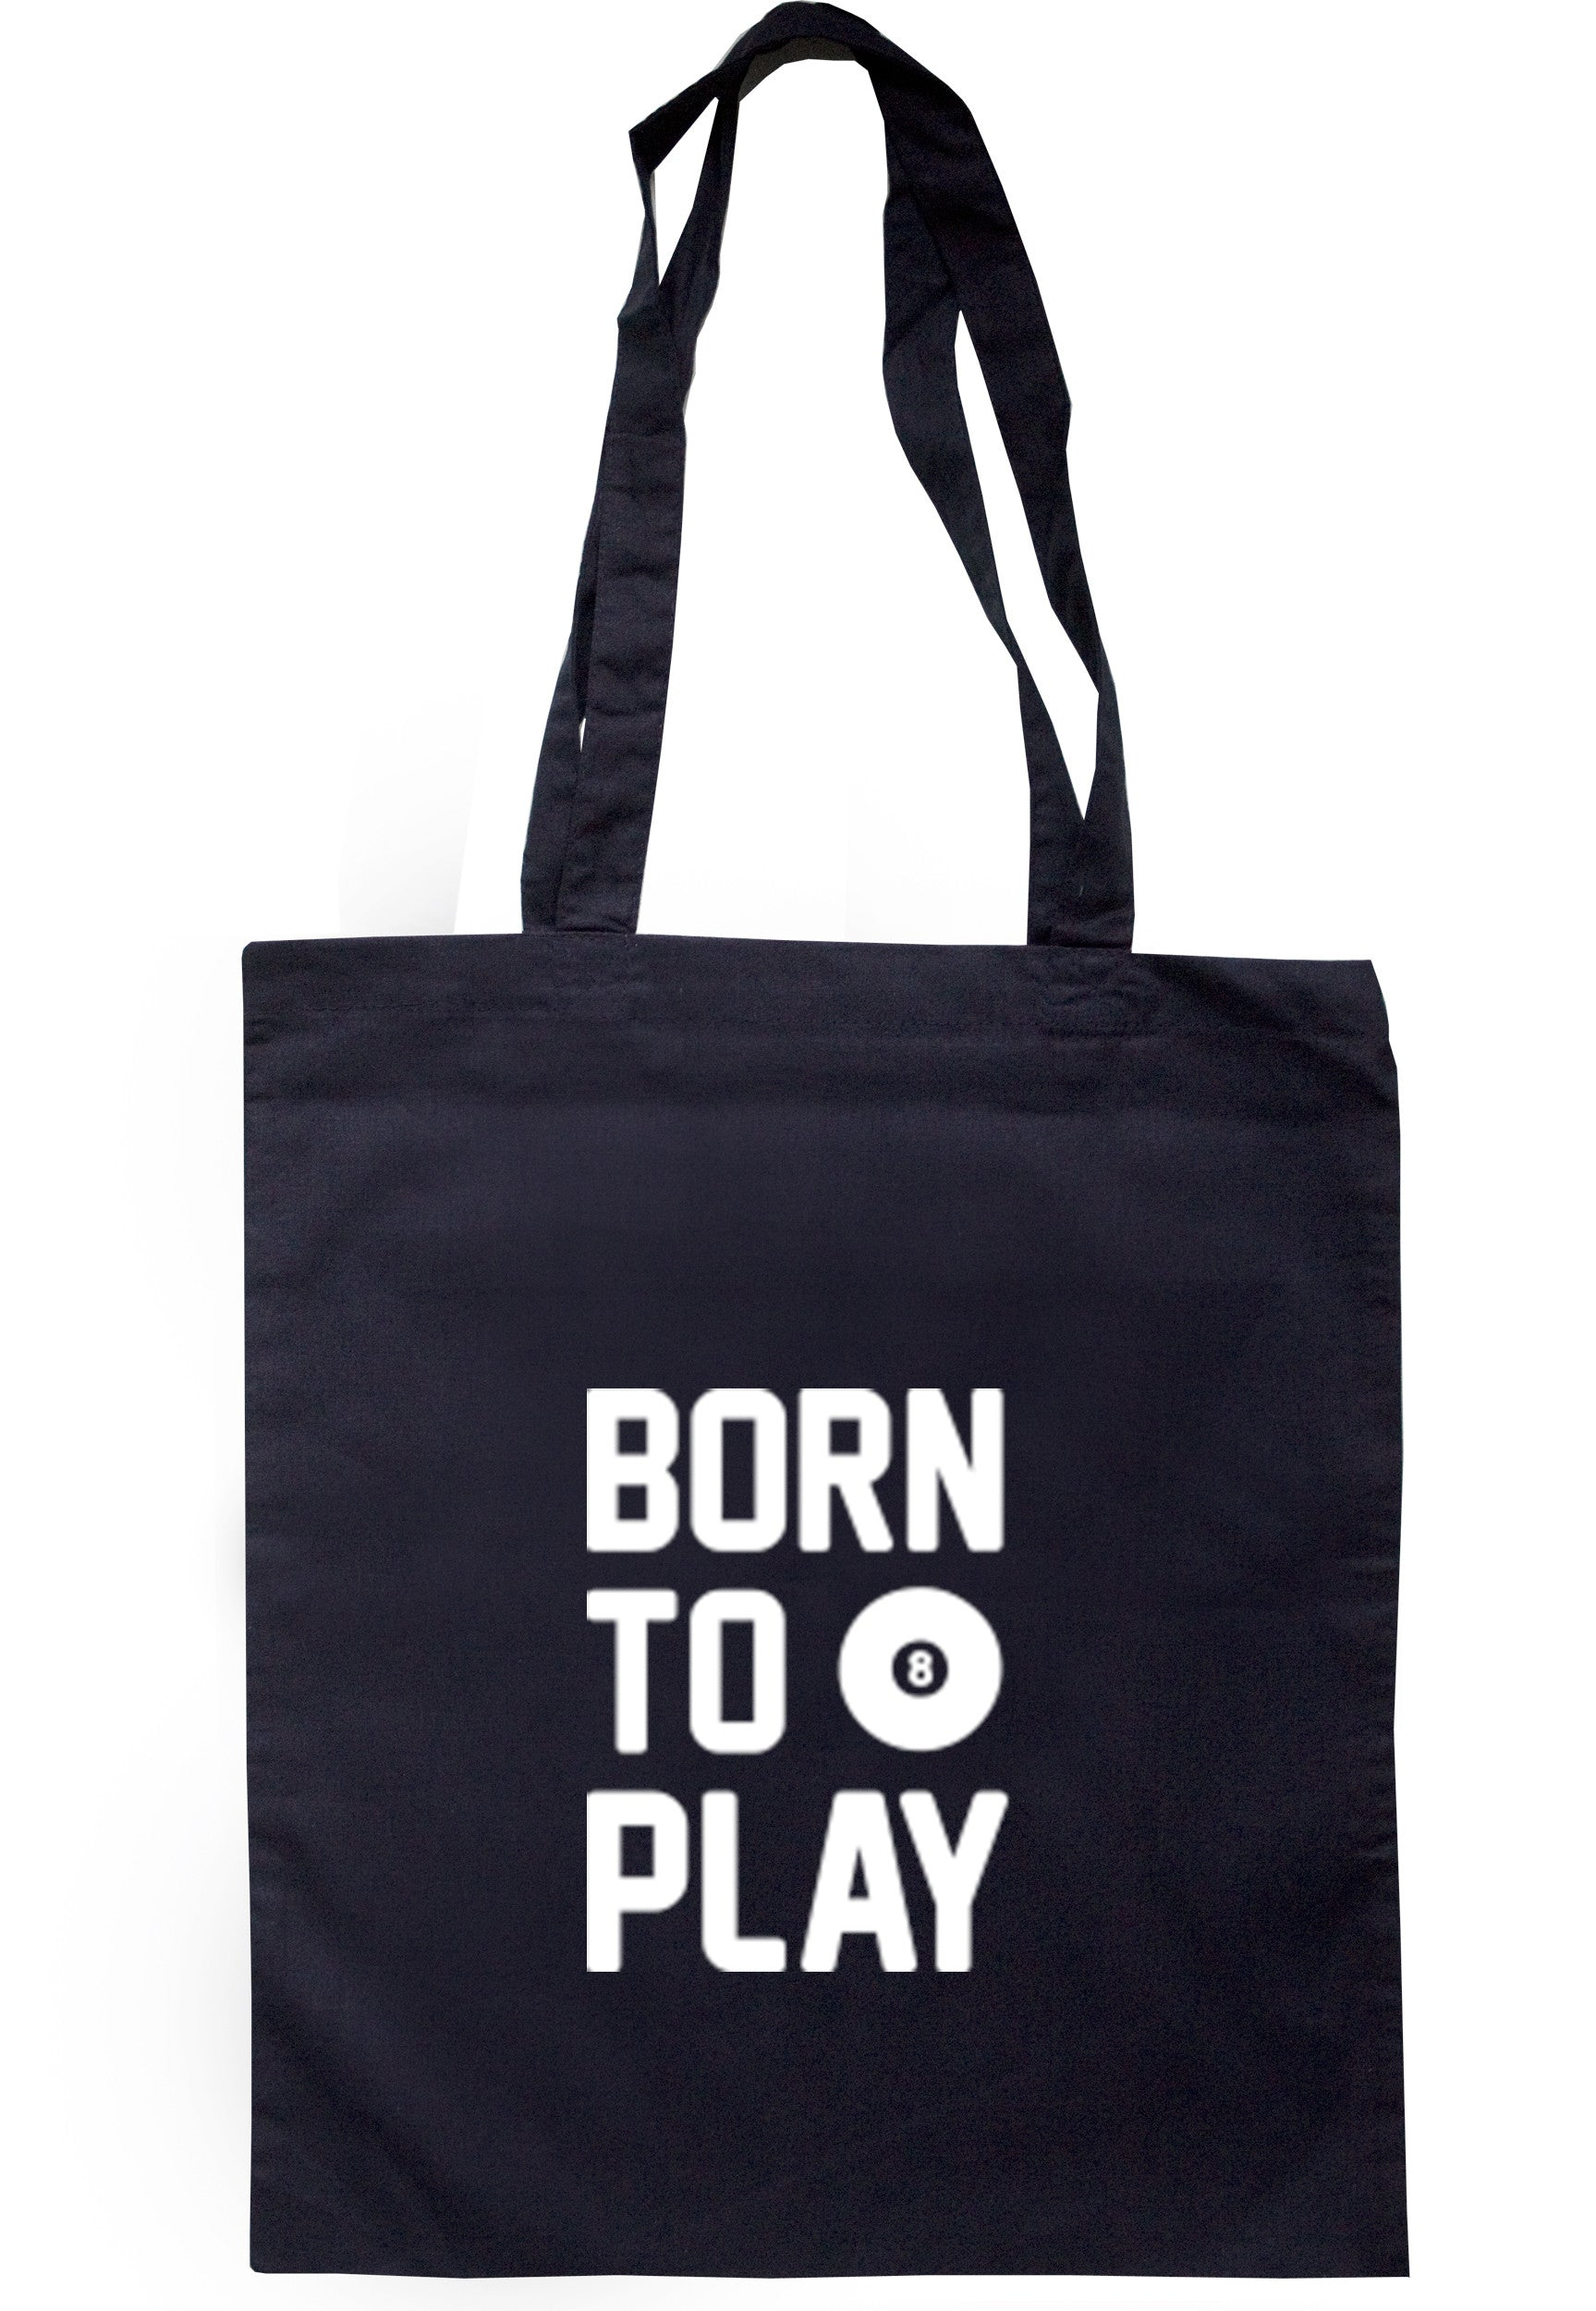 Born To Play Pool Tote Bag TB0354 - Illustrated Identity Ltd.